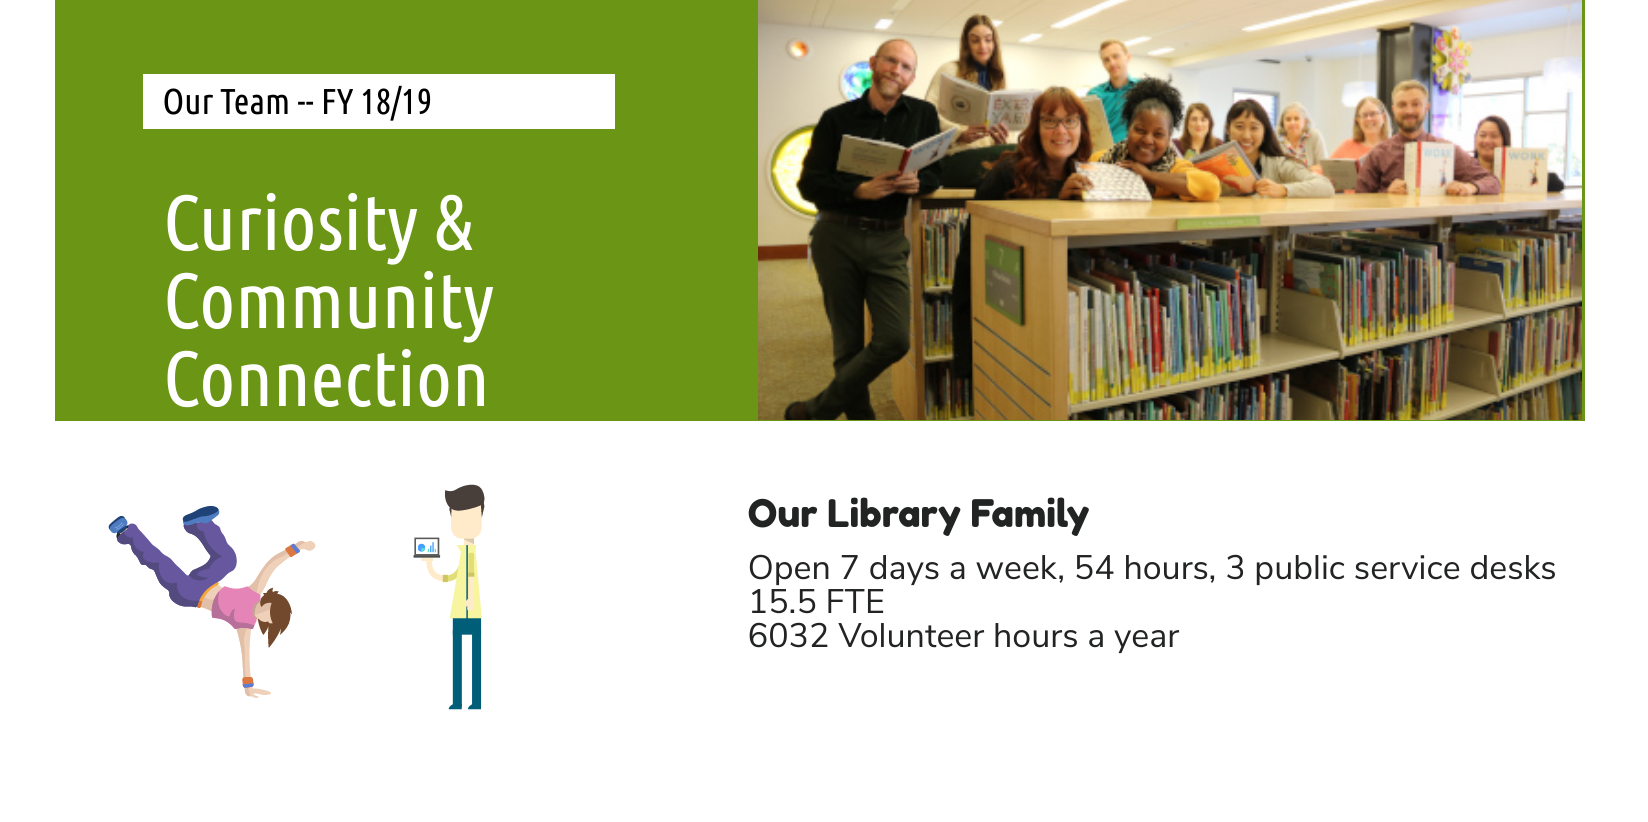 Our Team FY 17/18, Curiosity & Community Connection, Our Library Family, Open 7 days a week, 54 hour